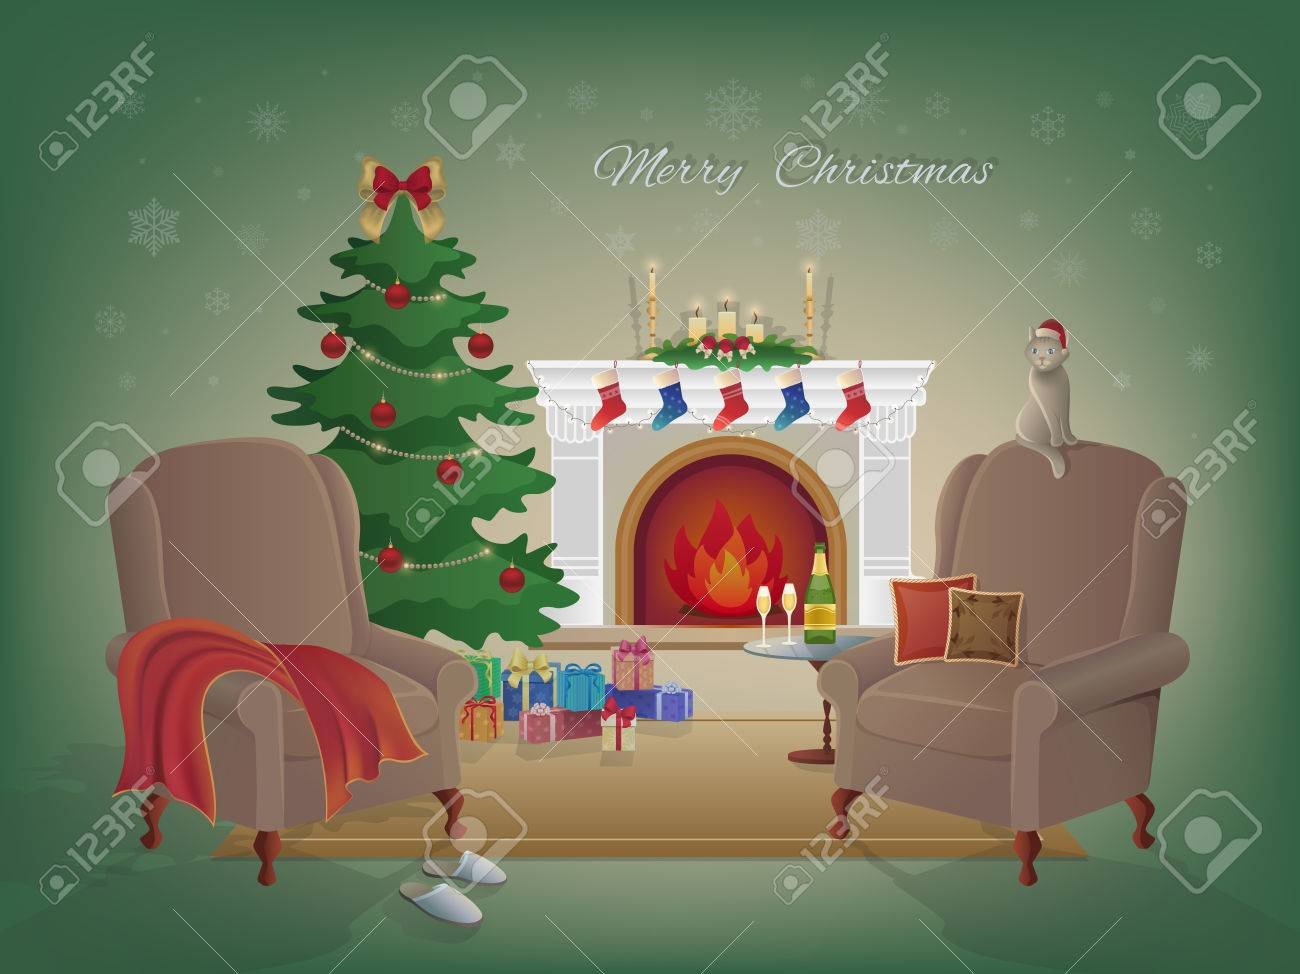 Merry Christmas Home Interior With A Fireplace Christmas Tree